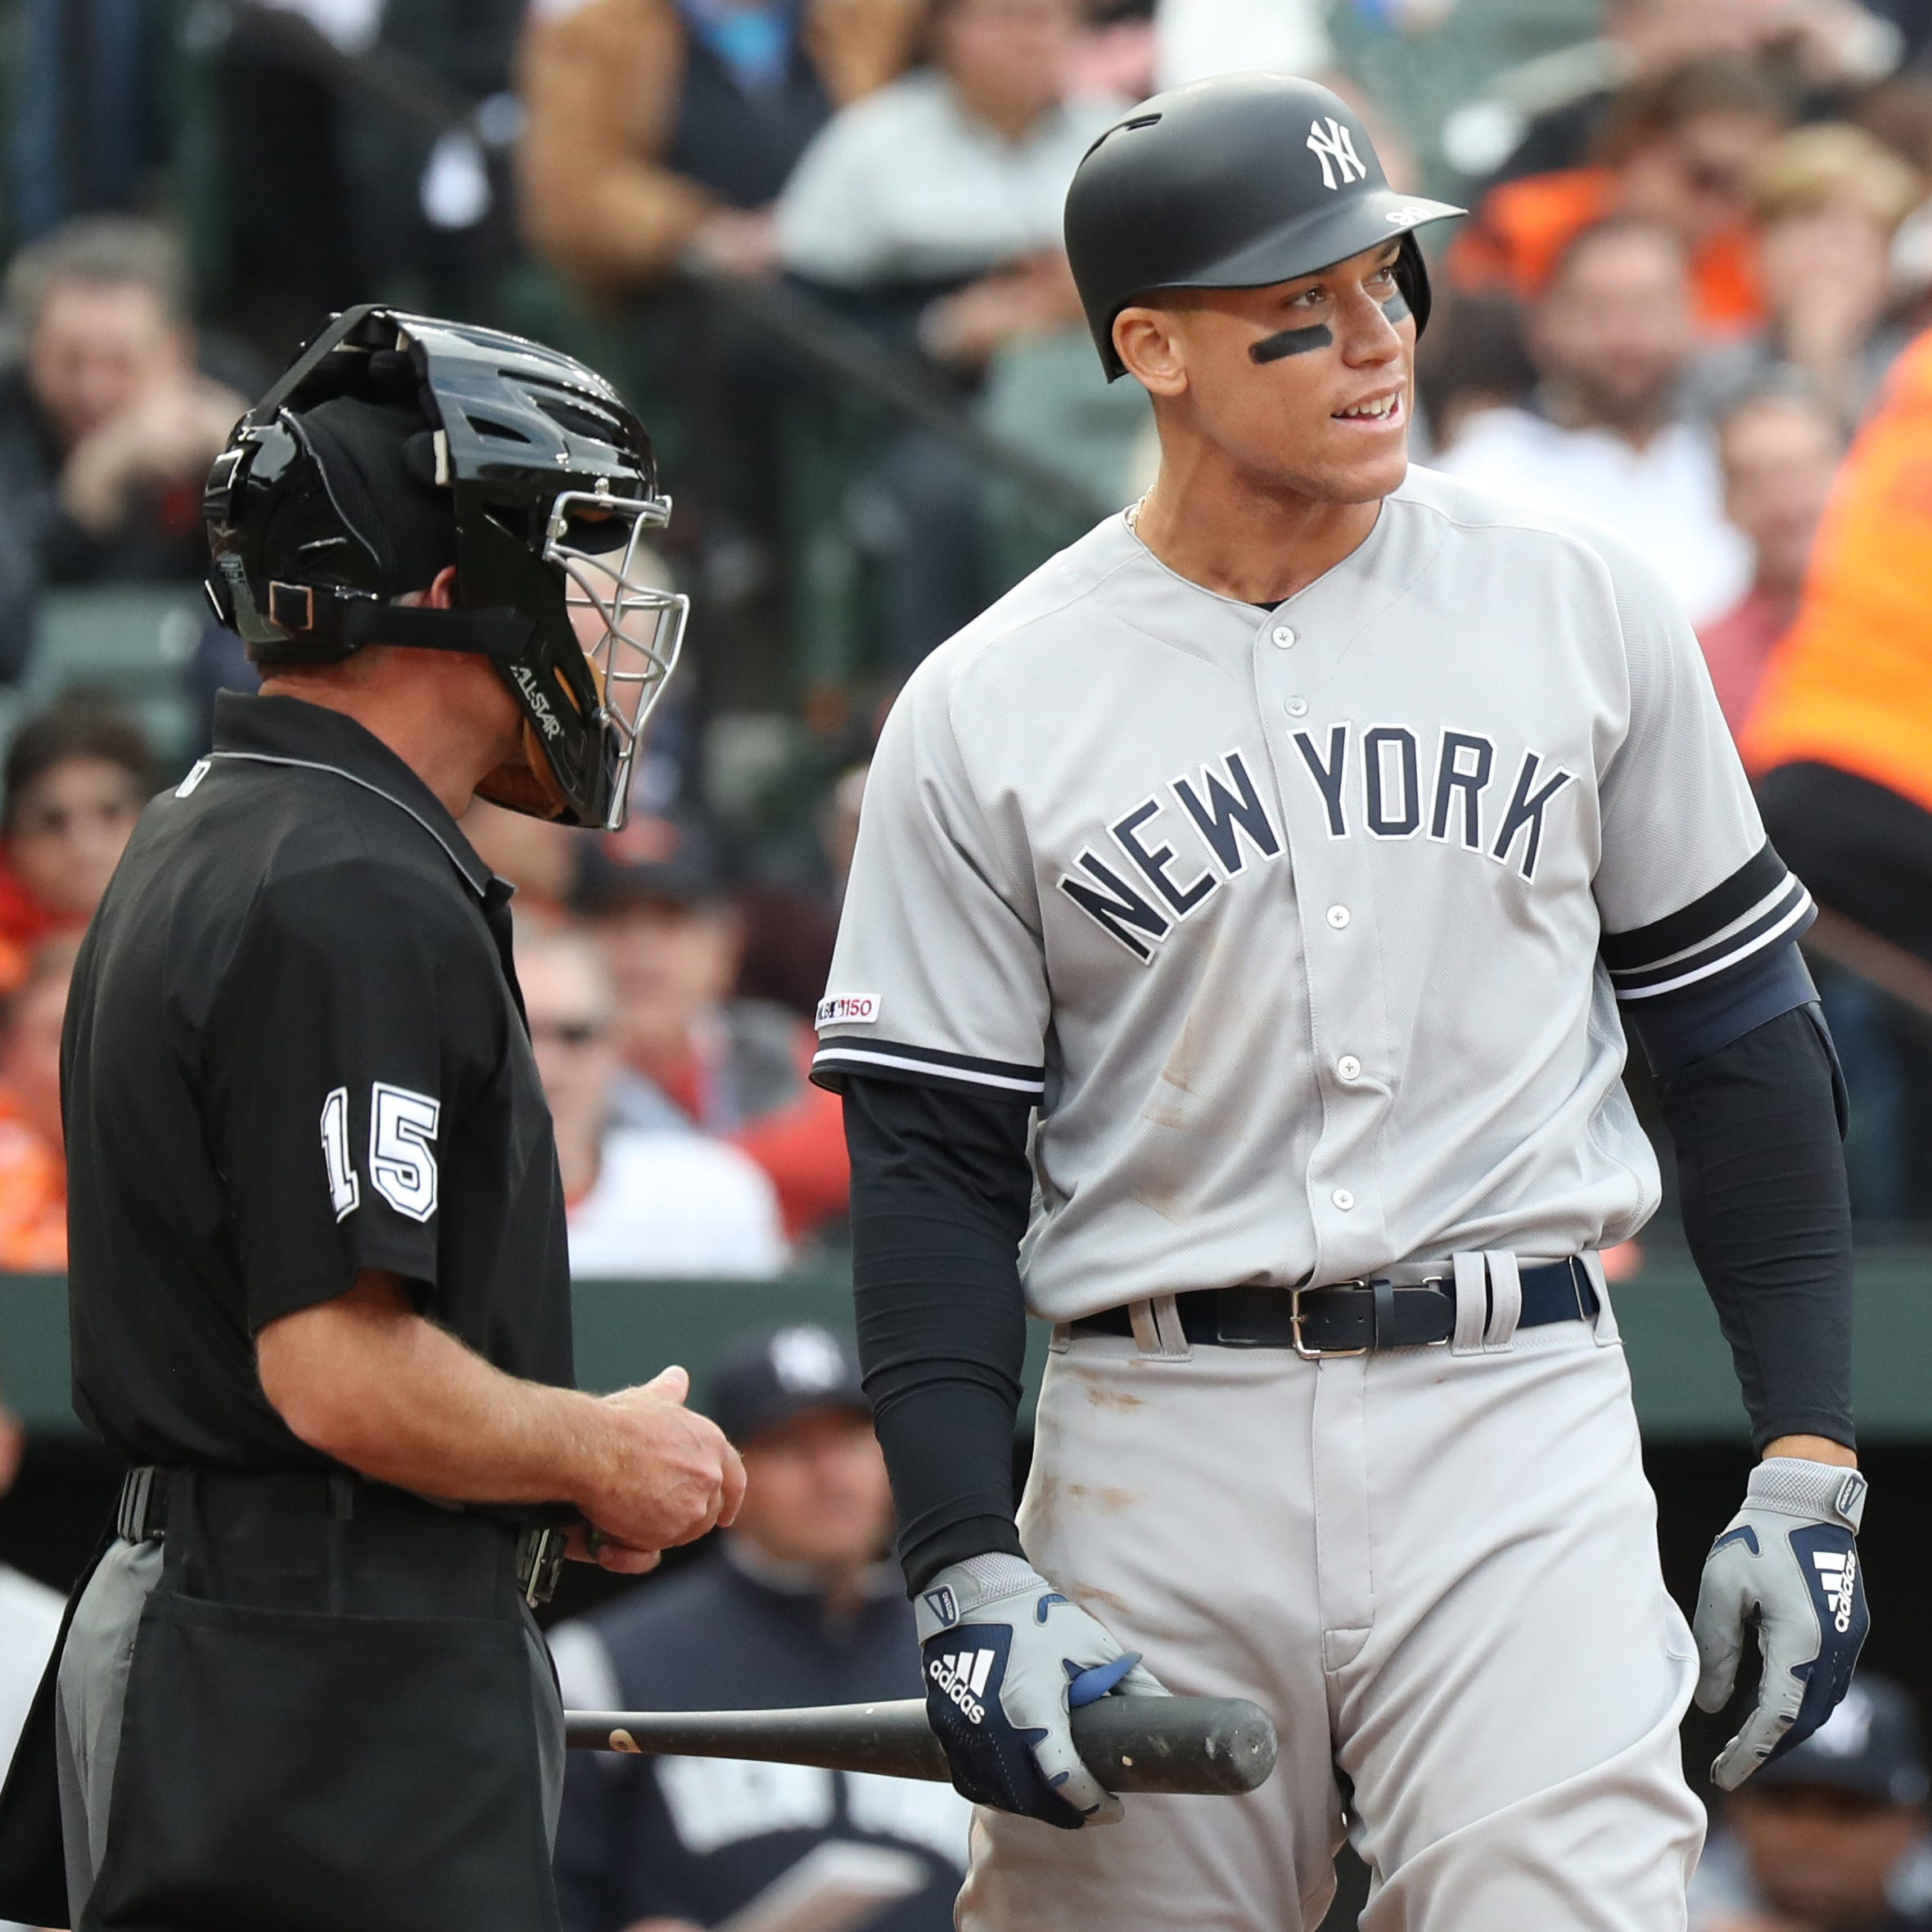 Yankees injury list: Tracking when the players will return